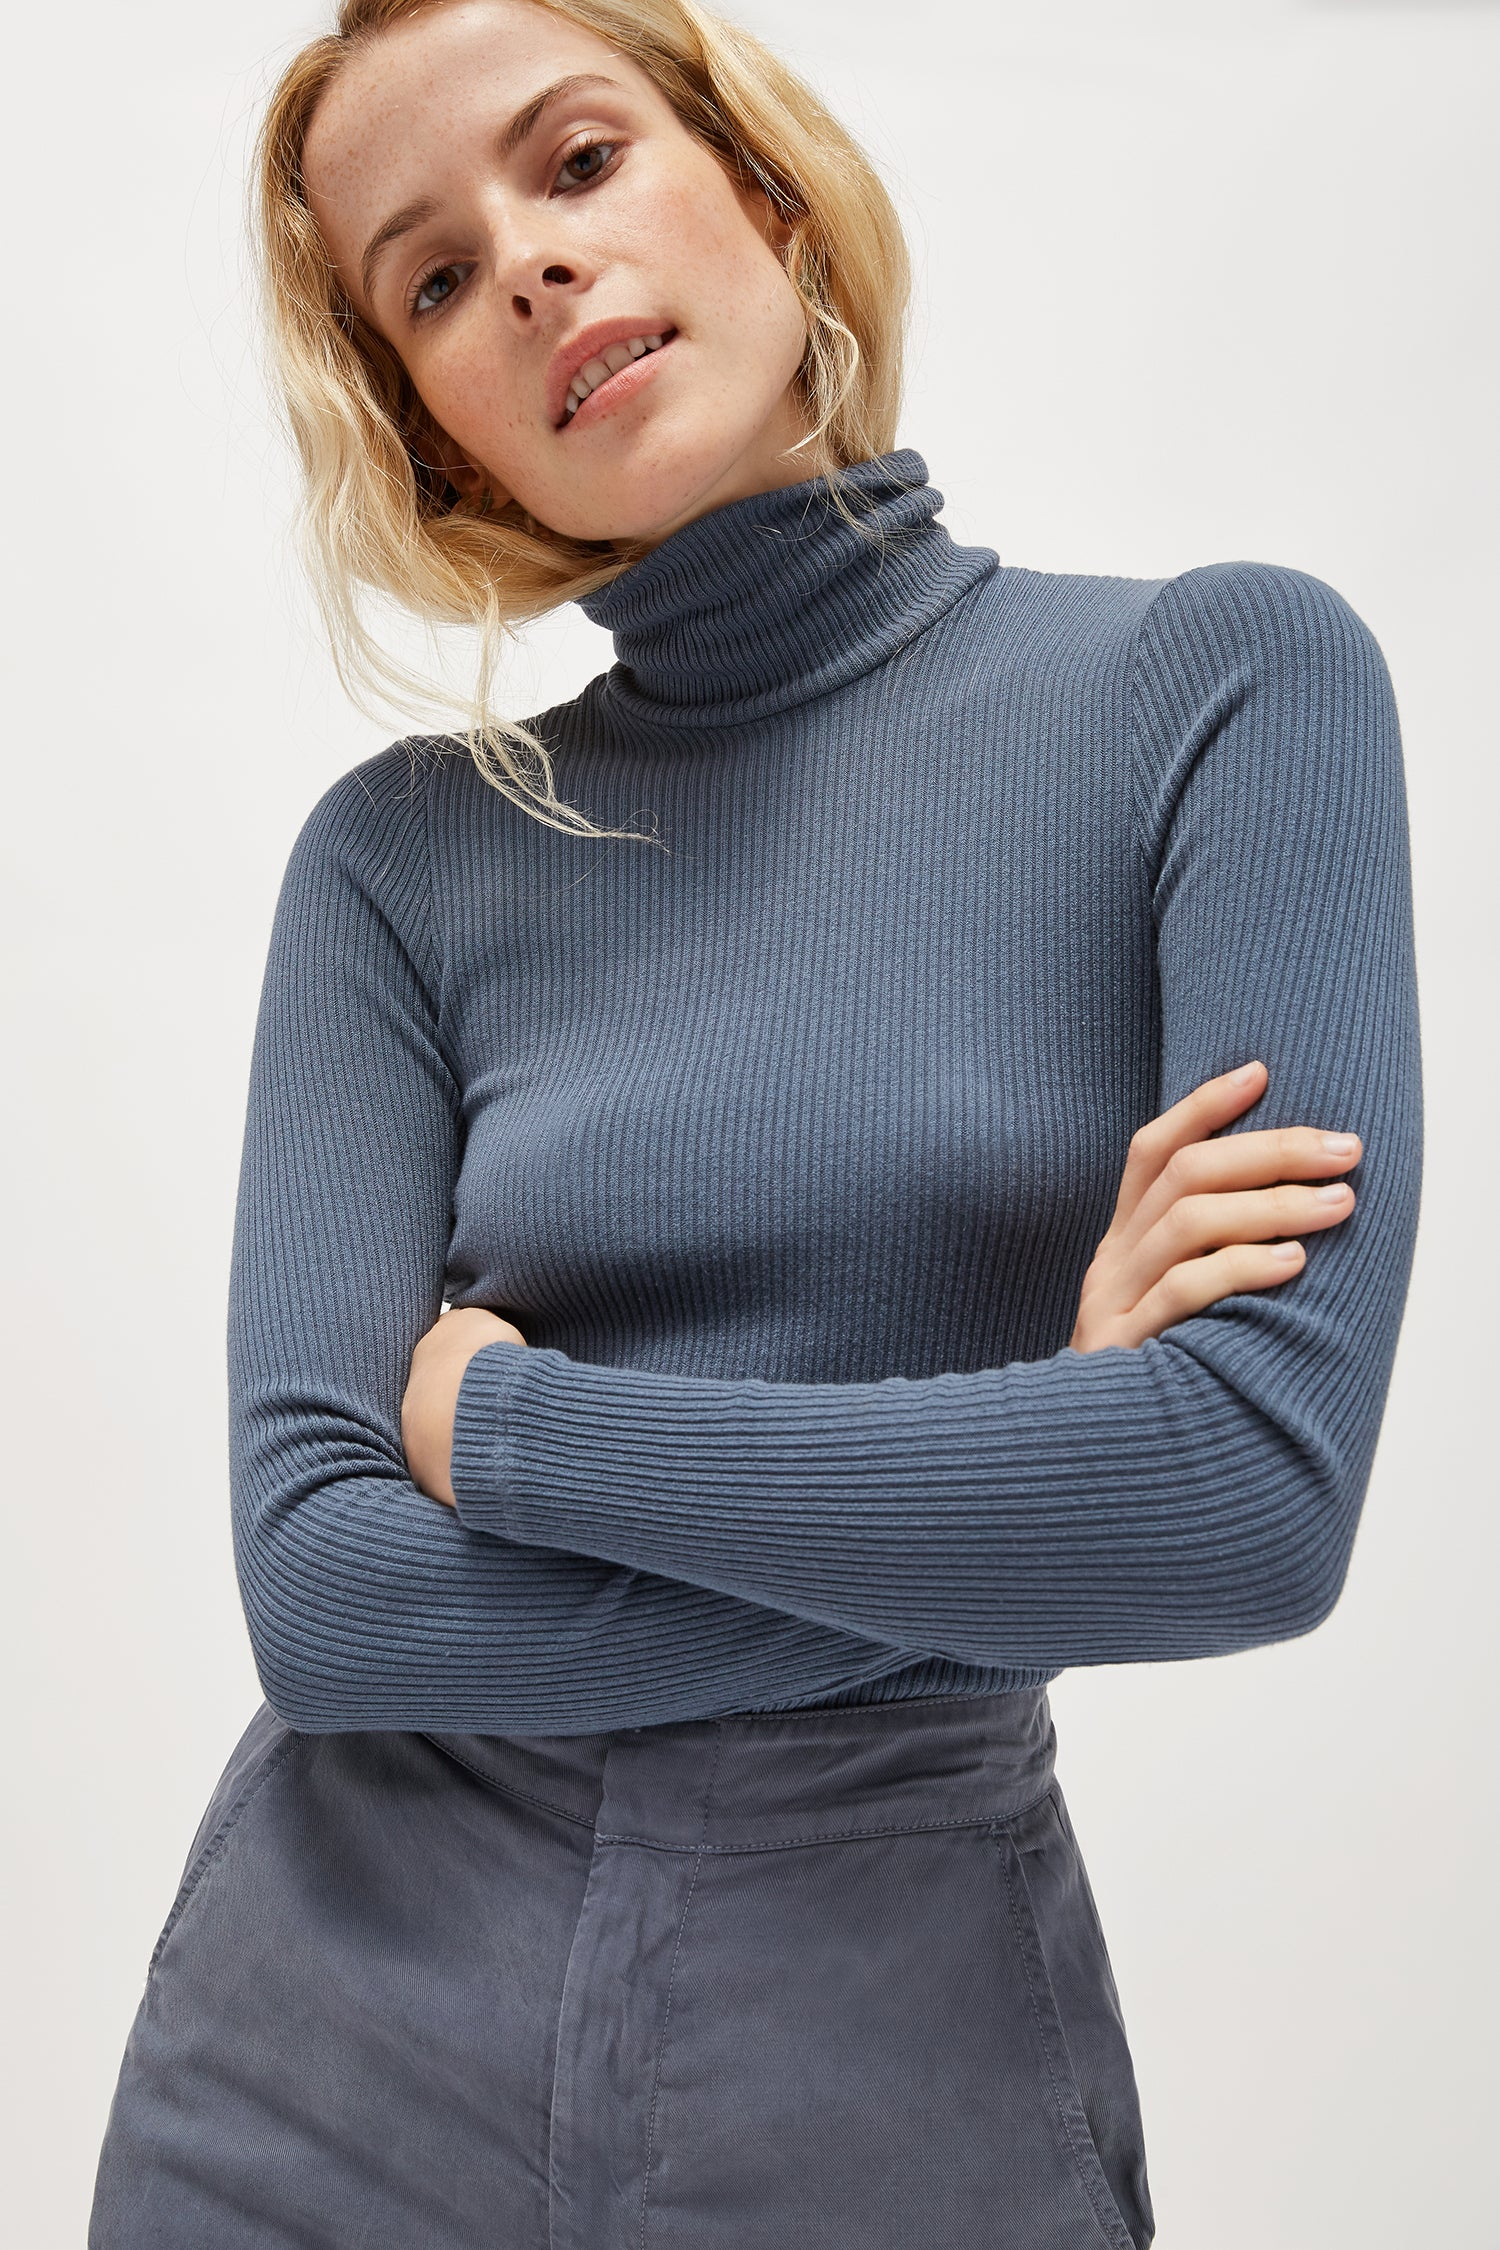 Rib Turtle Neck - Steel